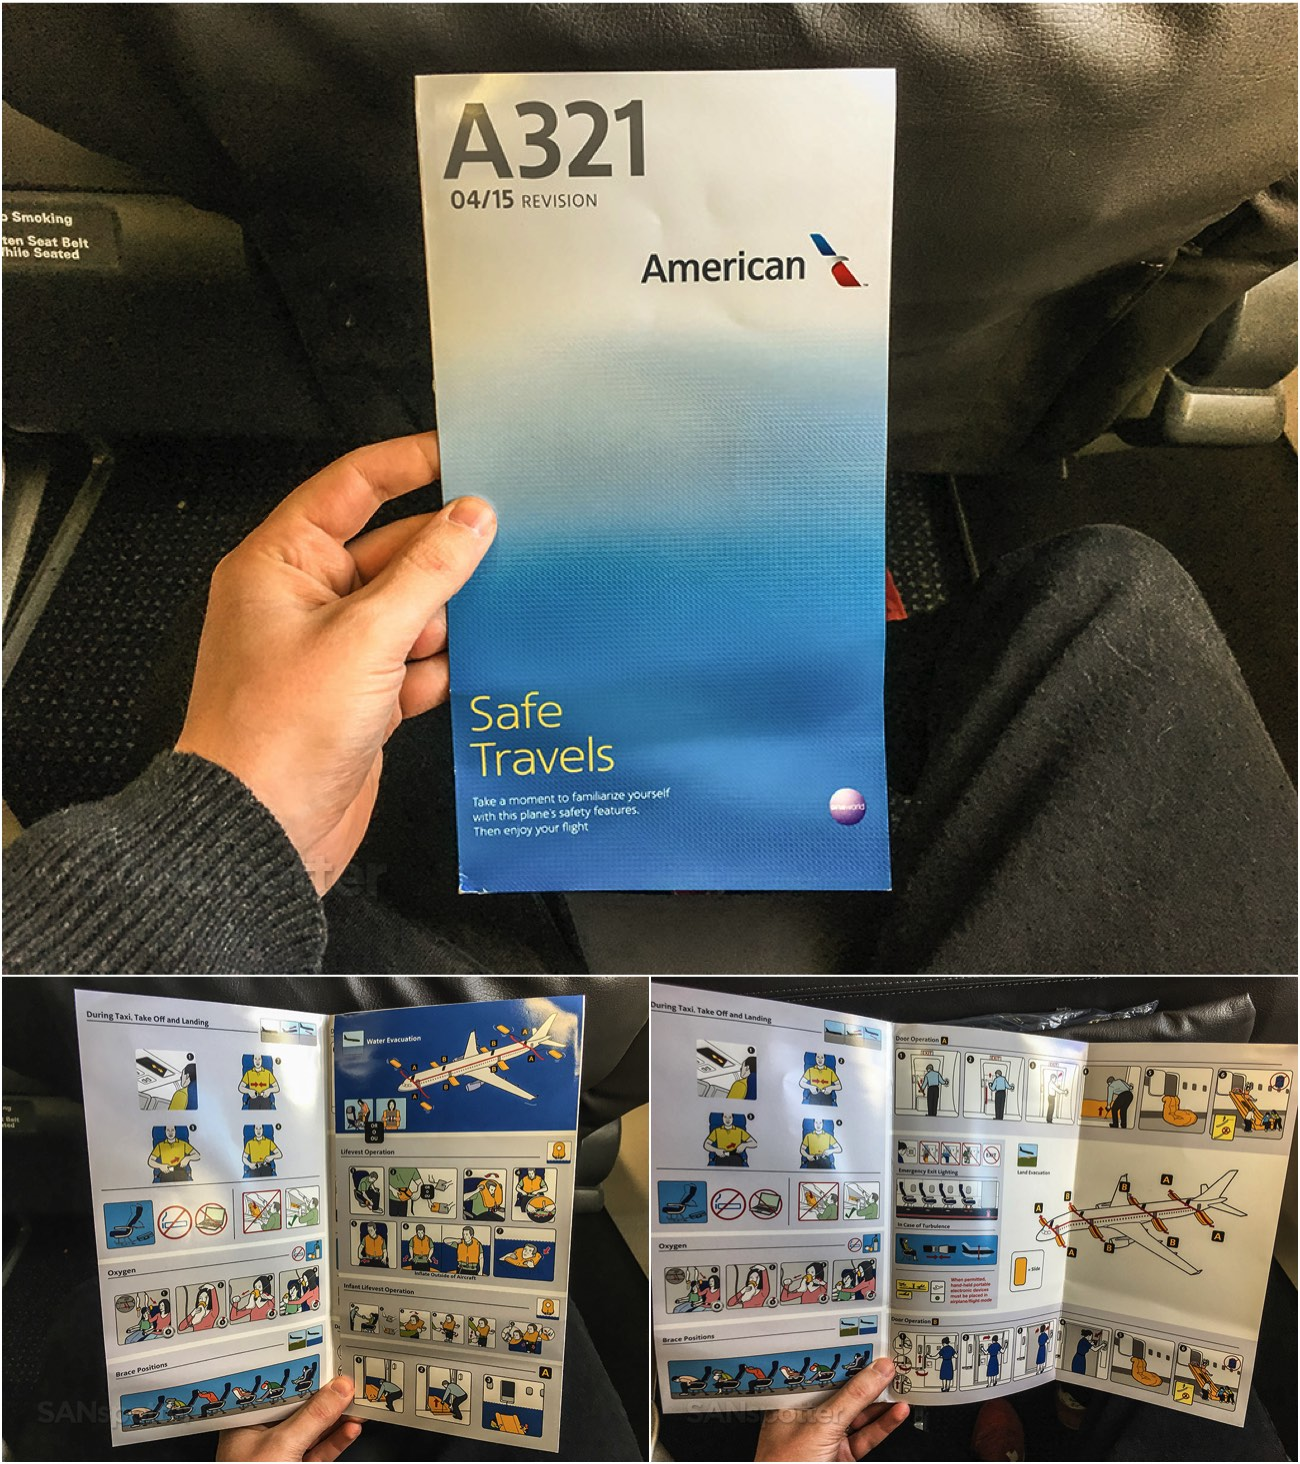 American Airlines A321 safety card